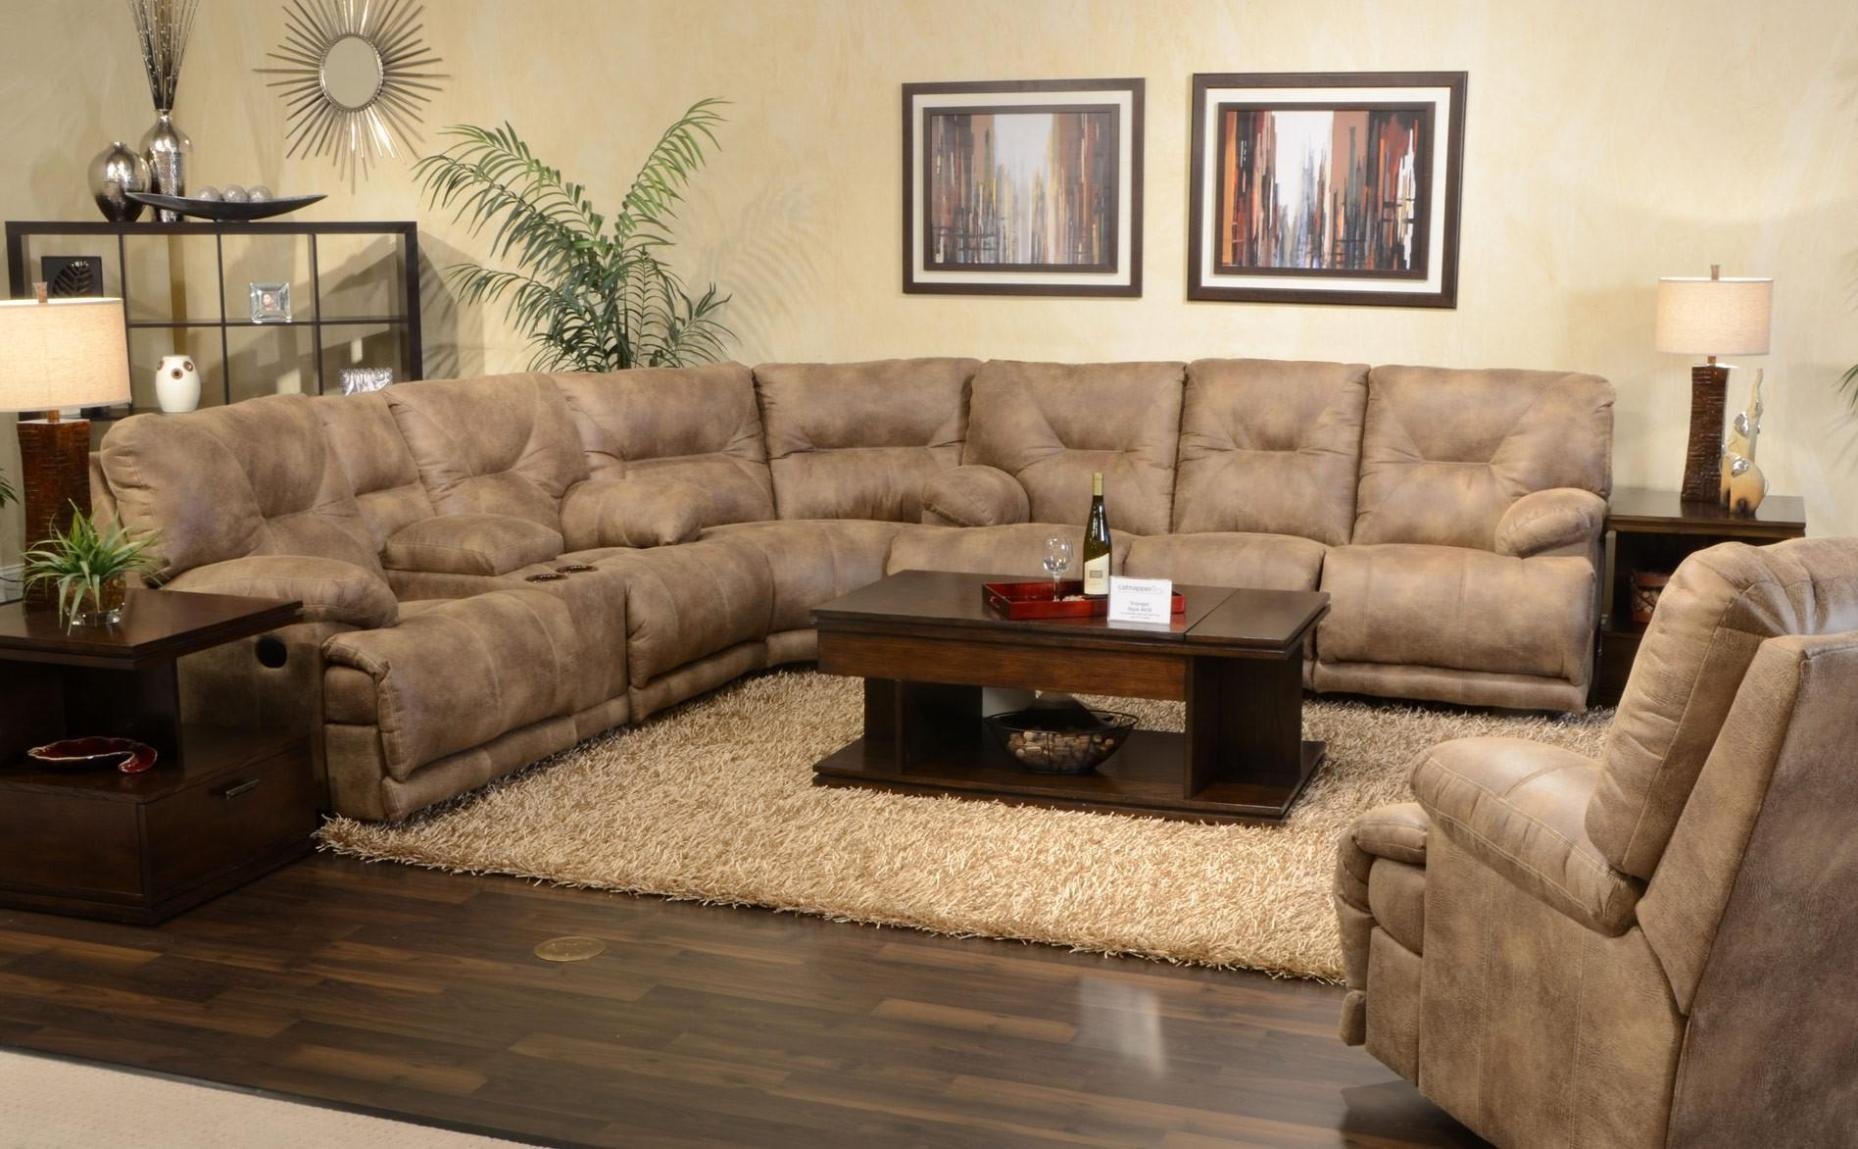 Best Slipcovers For Reclining Sectional Sofas Intended For Jedd Fabric Reclining Sectional Sofa (Image 1 of 20)